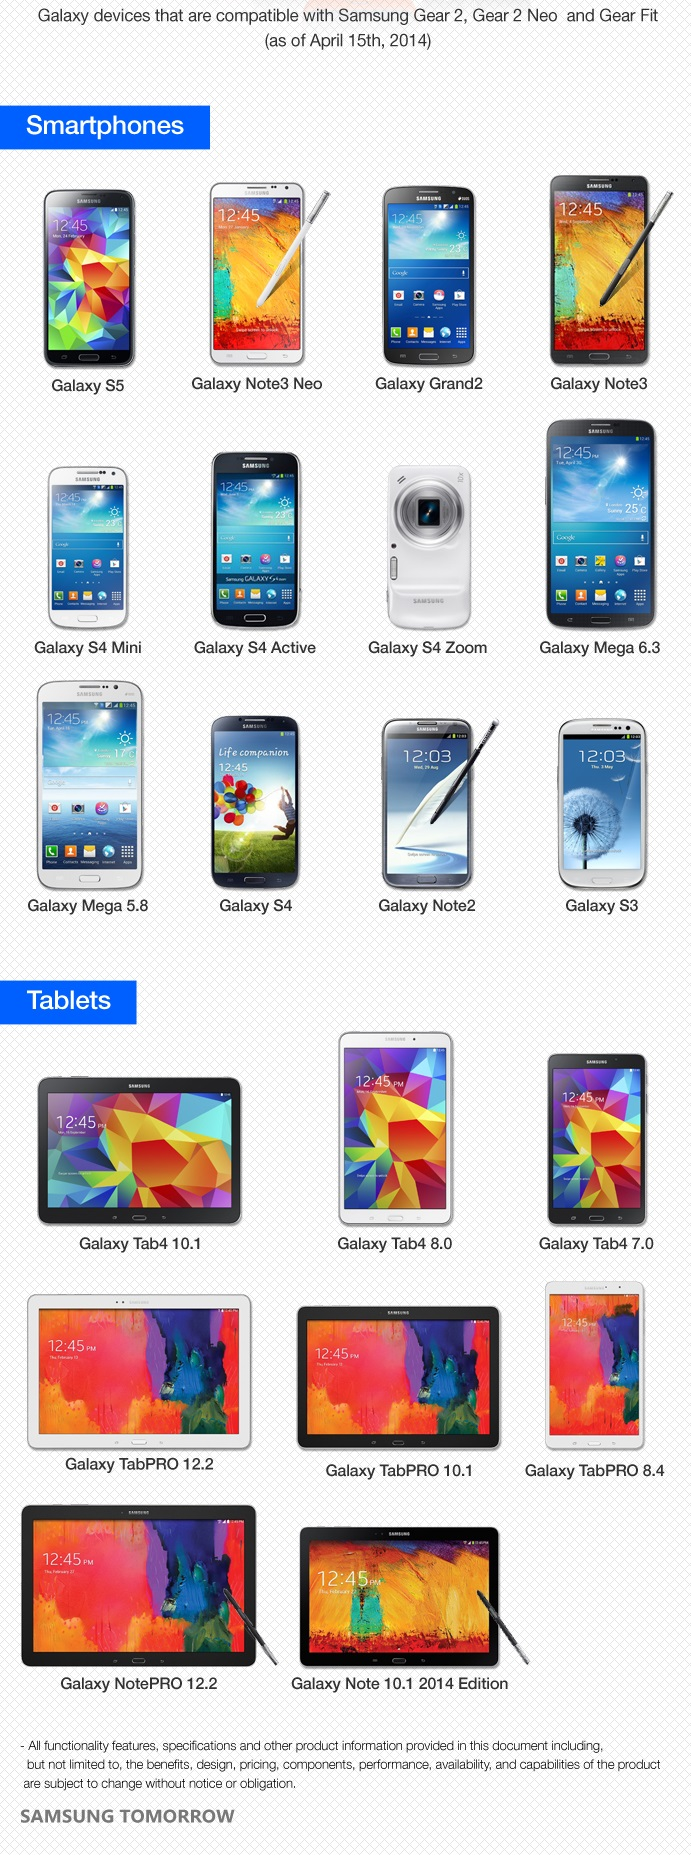 Samsung-Gear-Devices-Compatible-with-20-Galaxy-Devices0